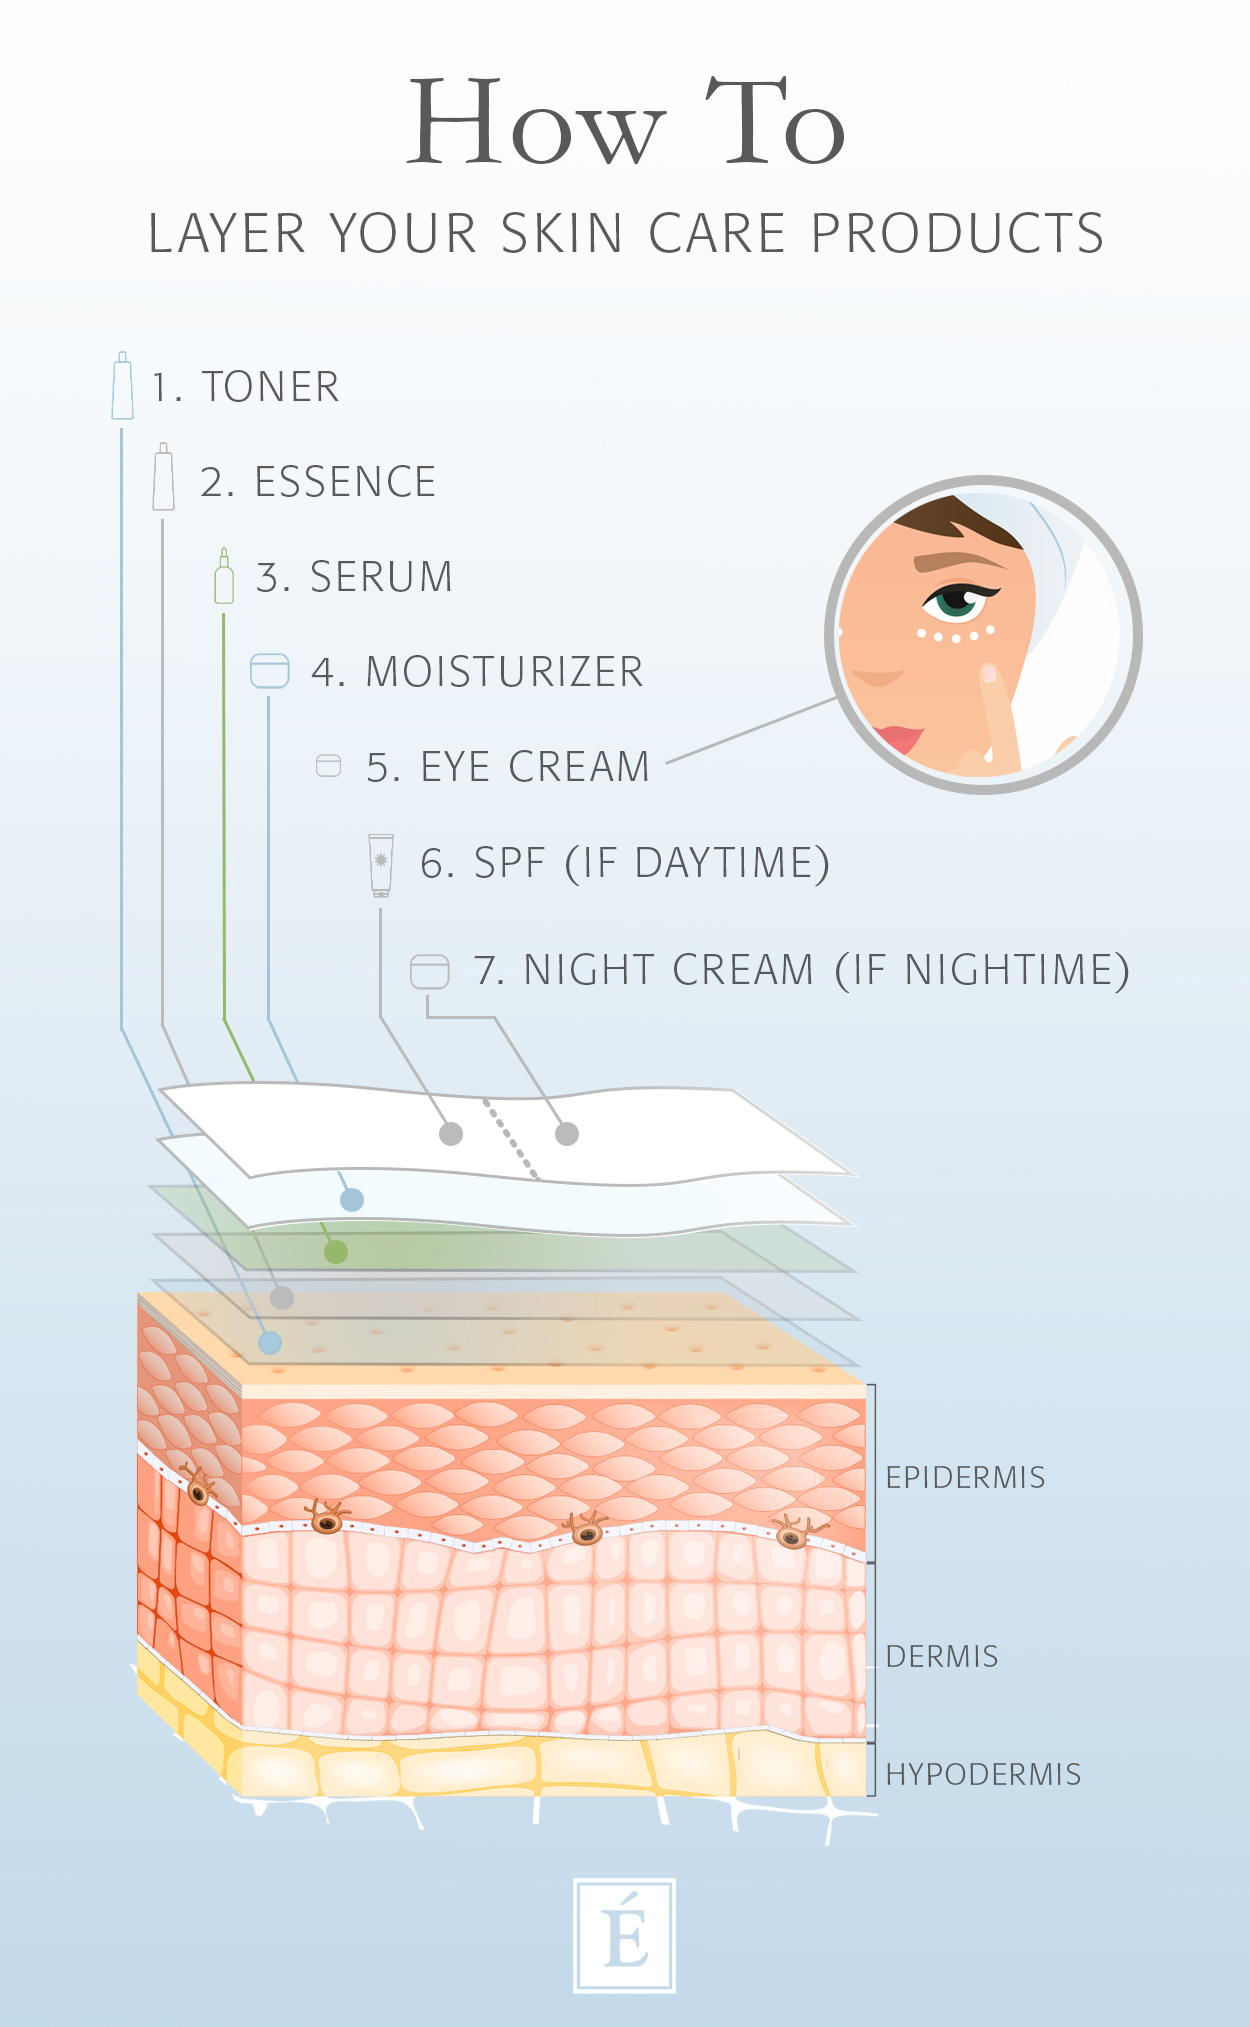 How To Layer Your Skin Care Products Infographic